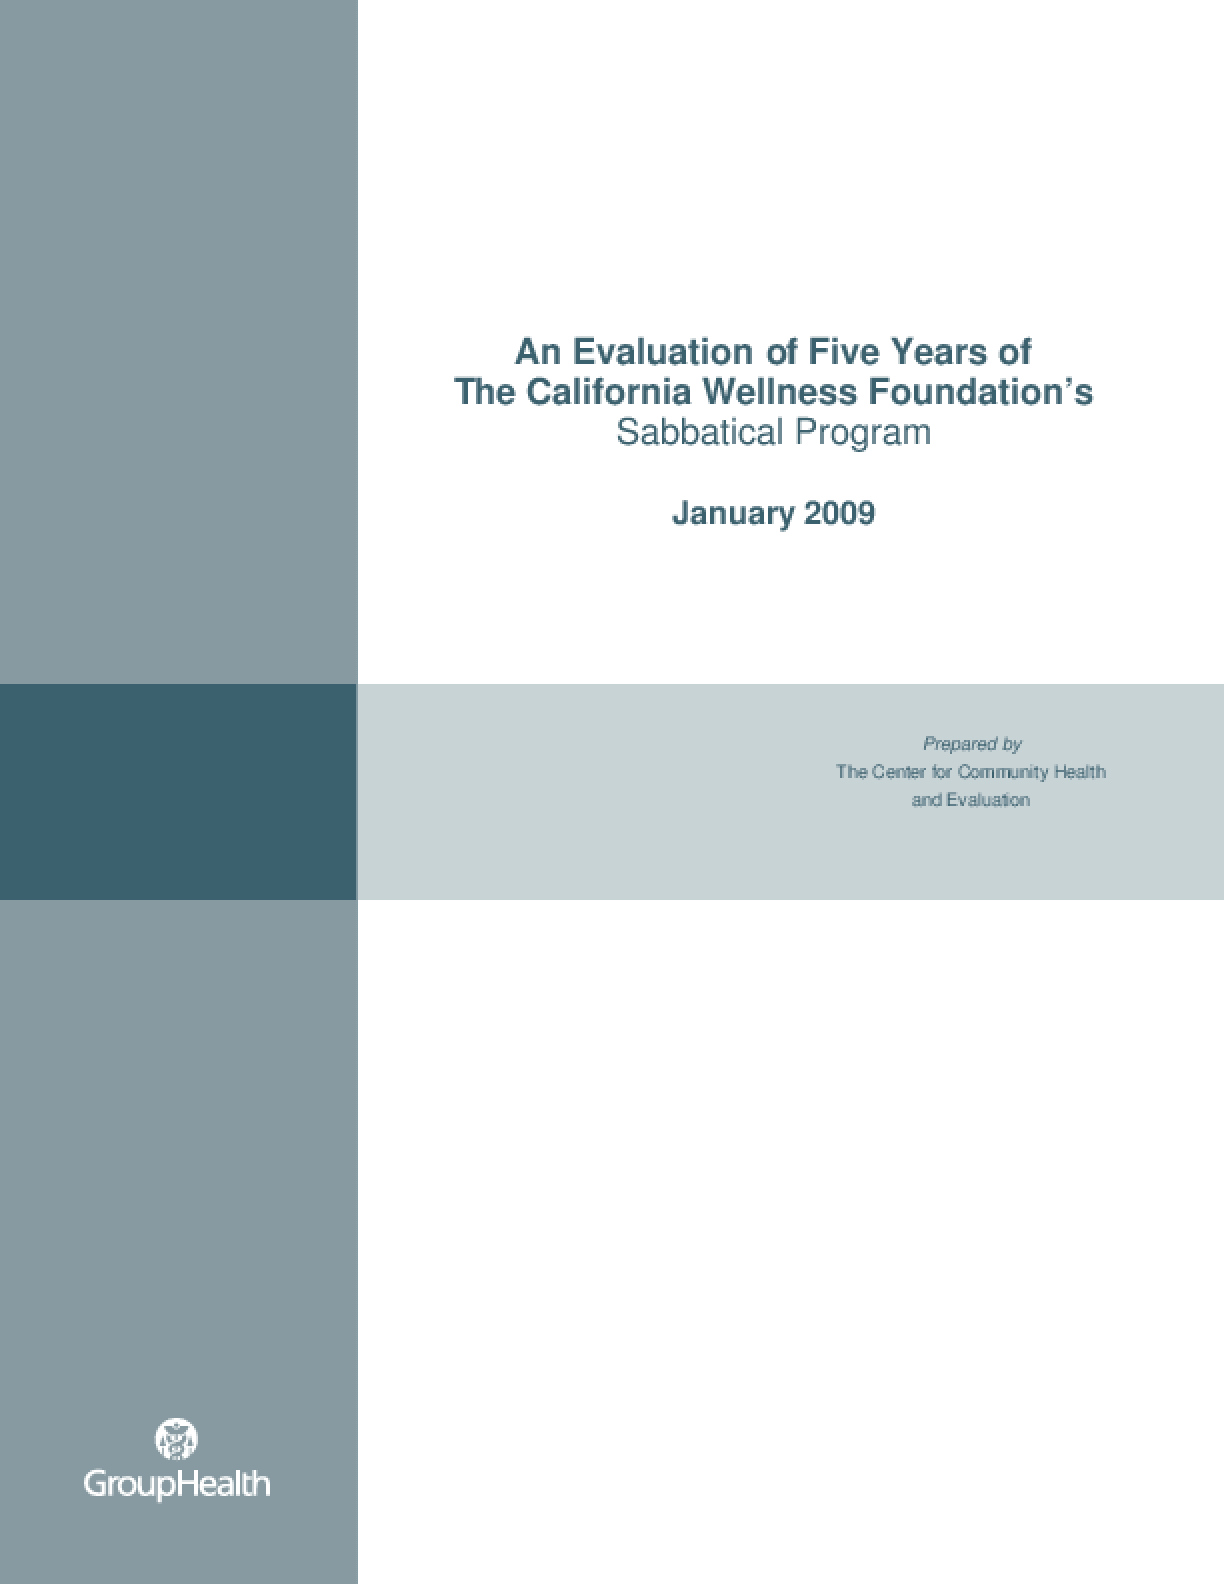 An Evaluation of Five Years of The California Wellness Foundation's Sabbatical Program